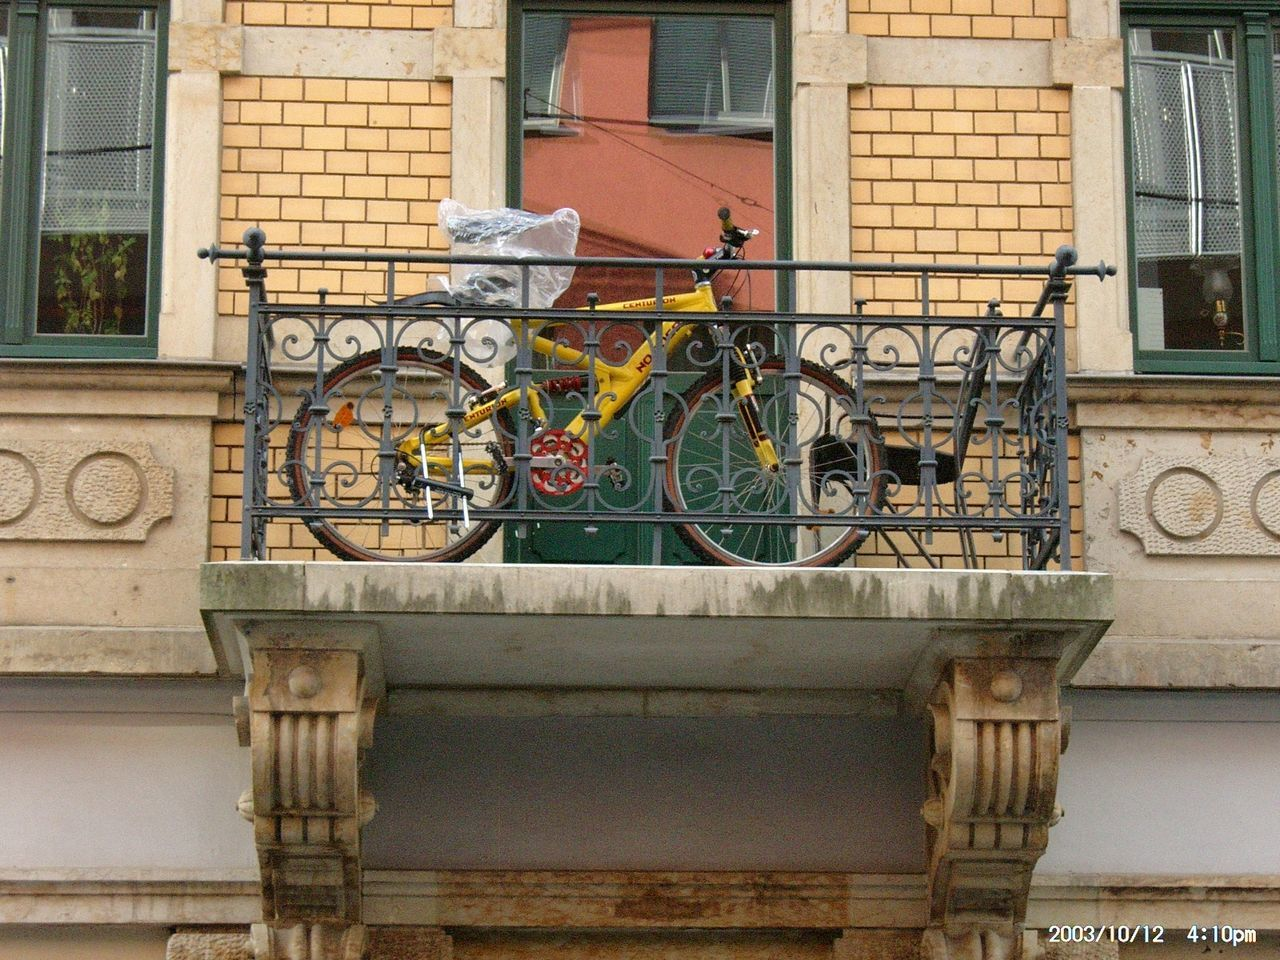 building exterior, architecture, built structure, outdoors, bicycle, day, house, residential building, no people, window, city